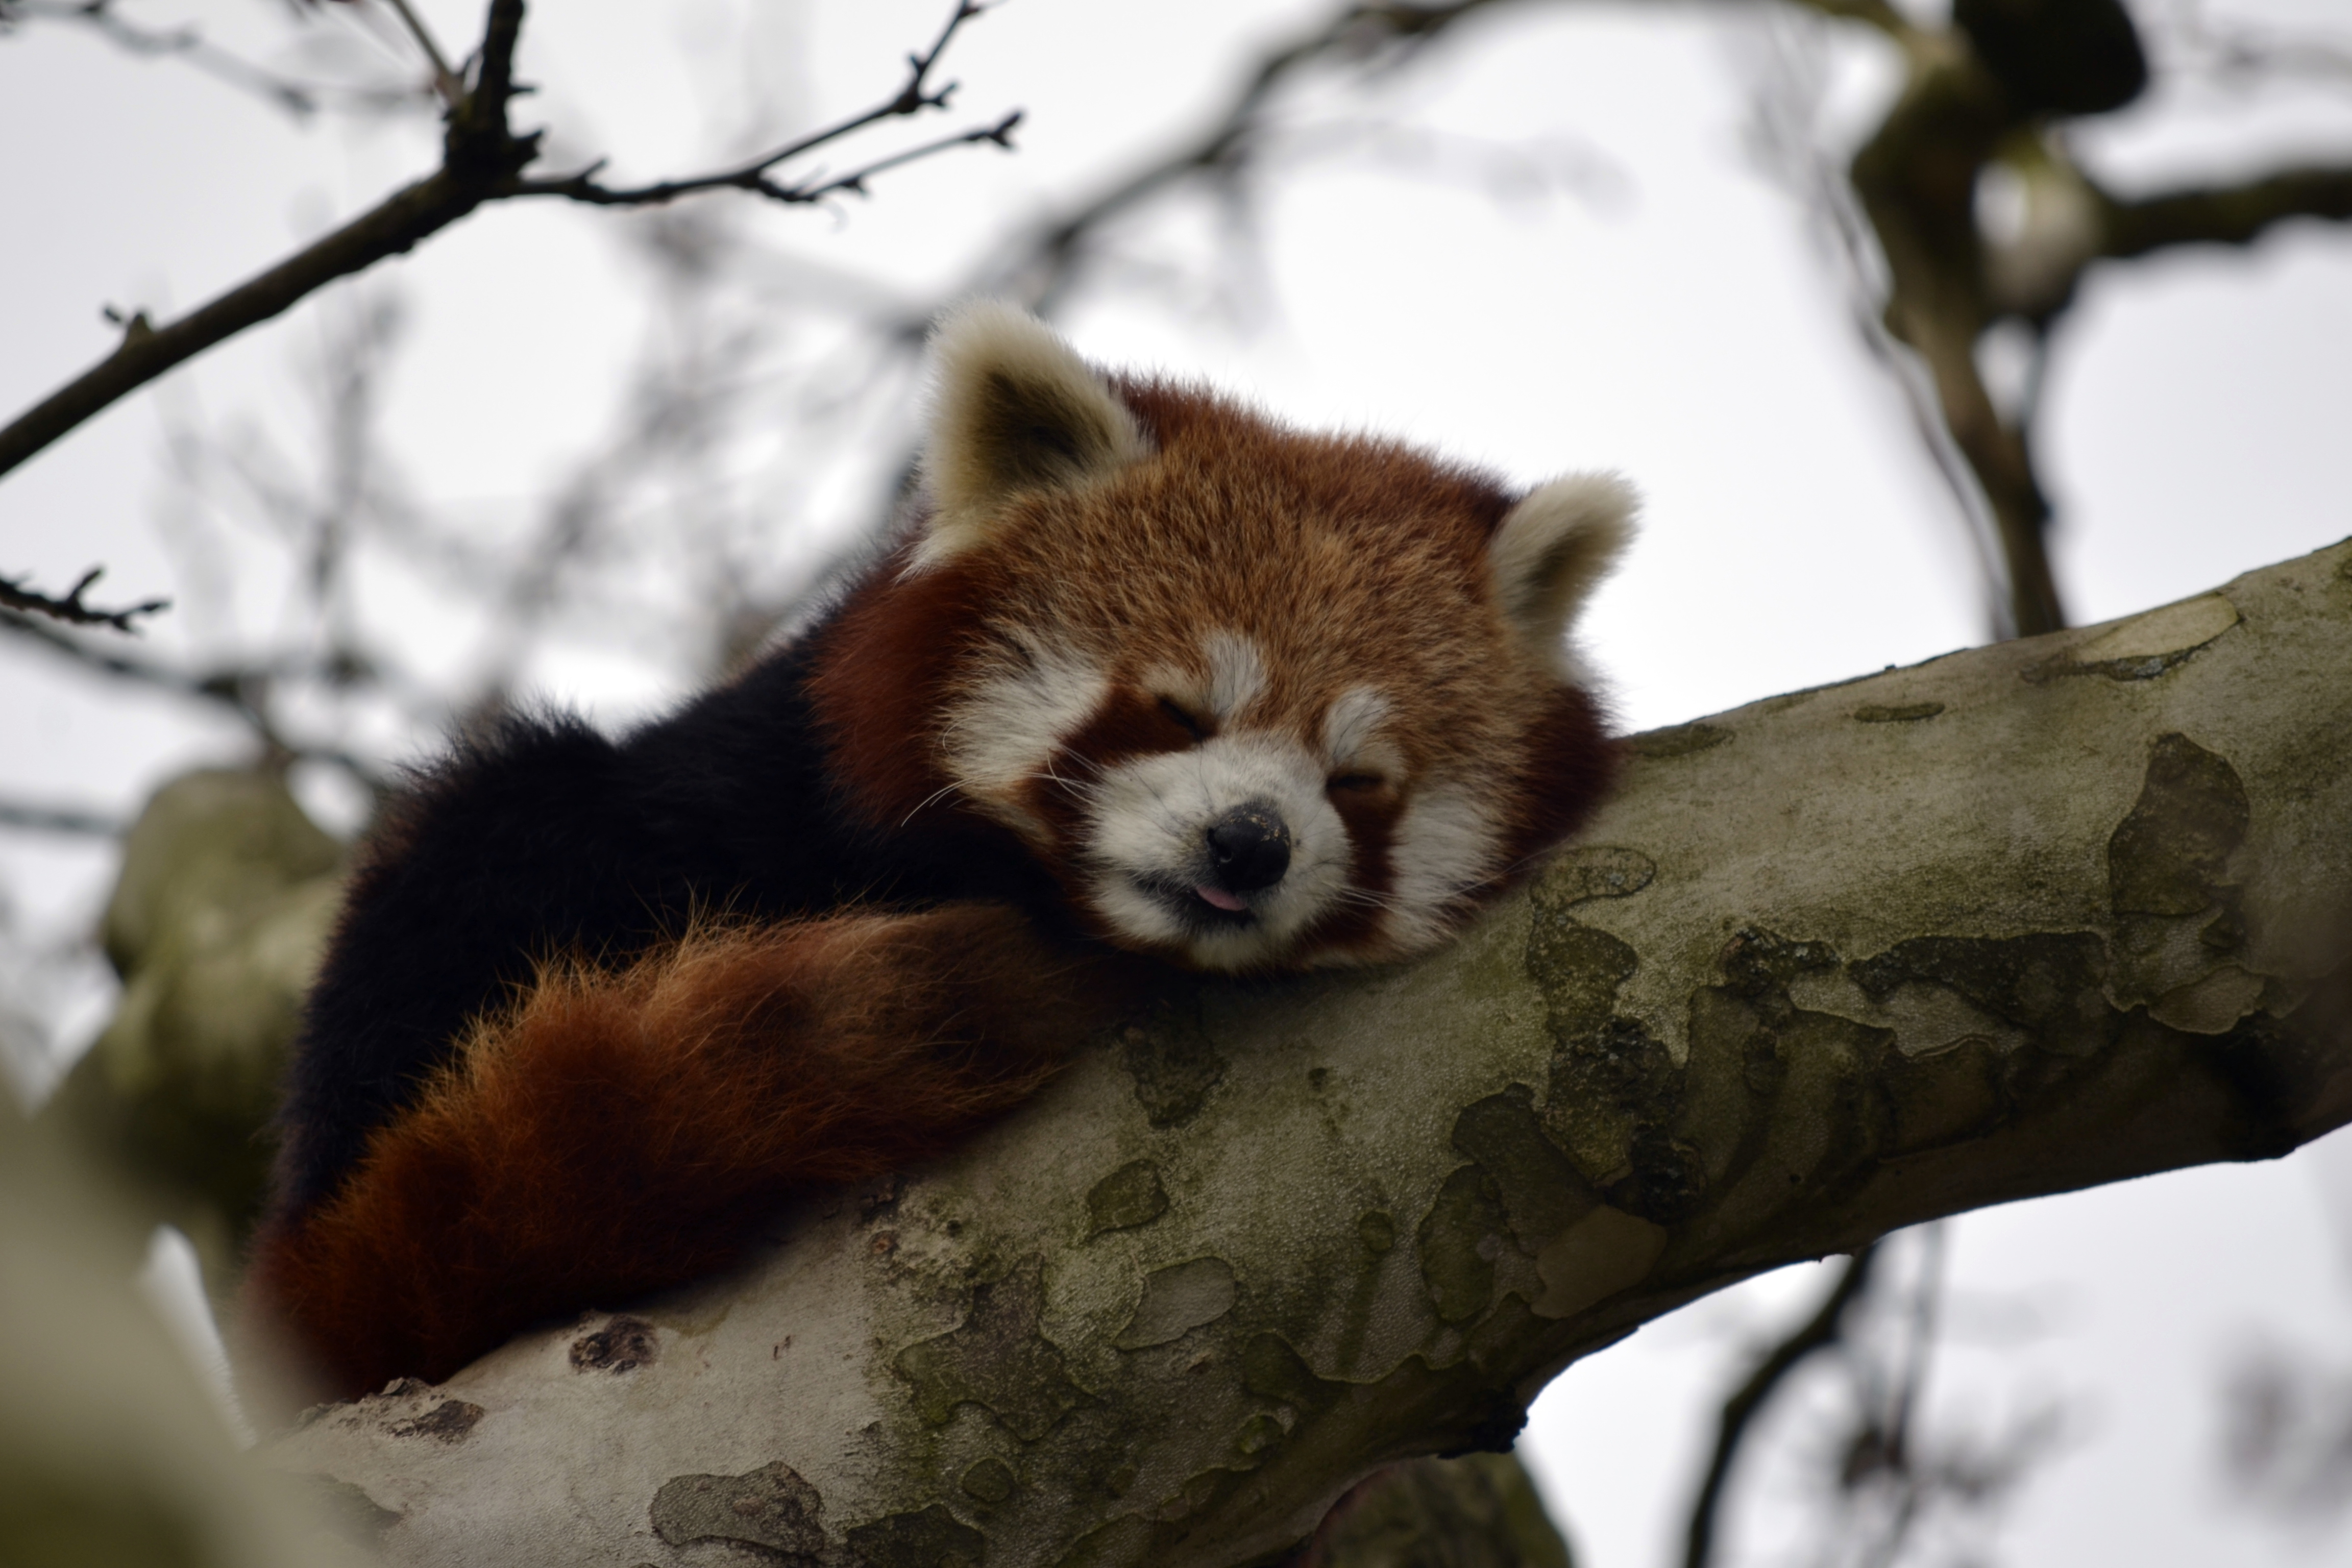 84889 download wallpaper Animals, Little Panda, Small Panda, Animal, Nice, Sweetheart, Wood, Tree, Branch screensavers and pictures for free